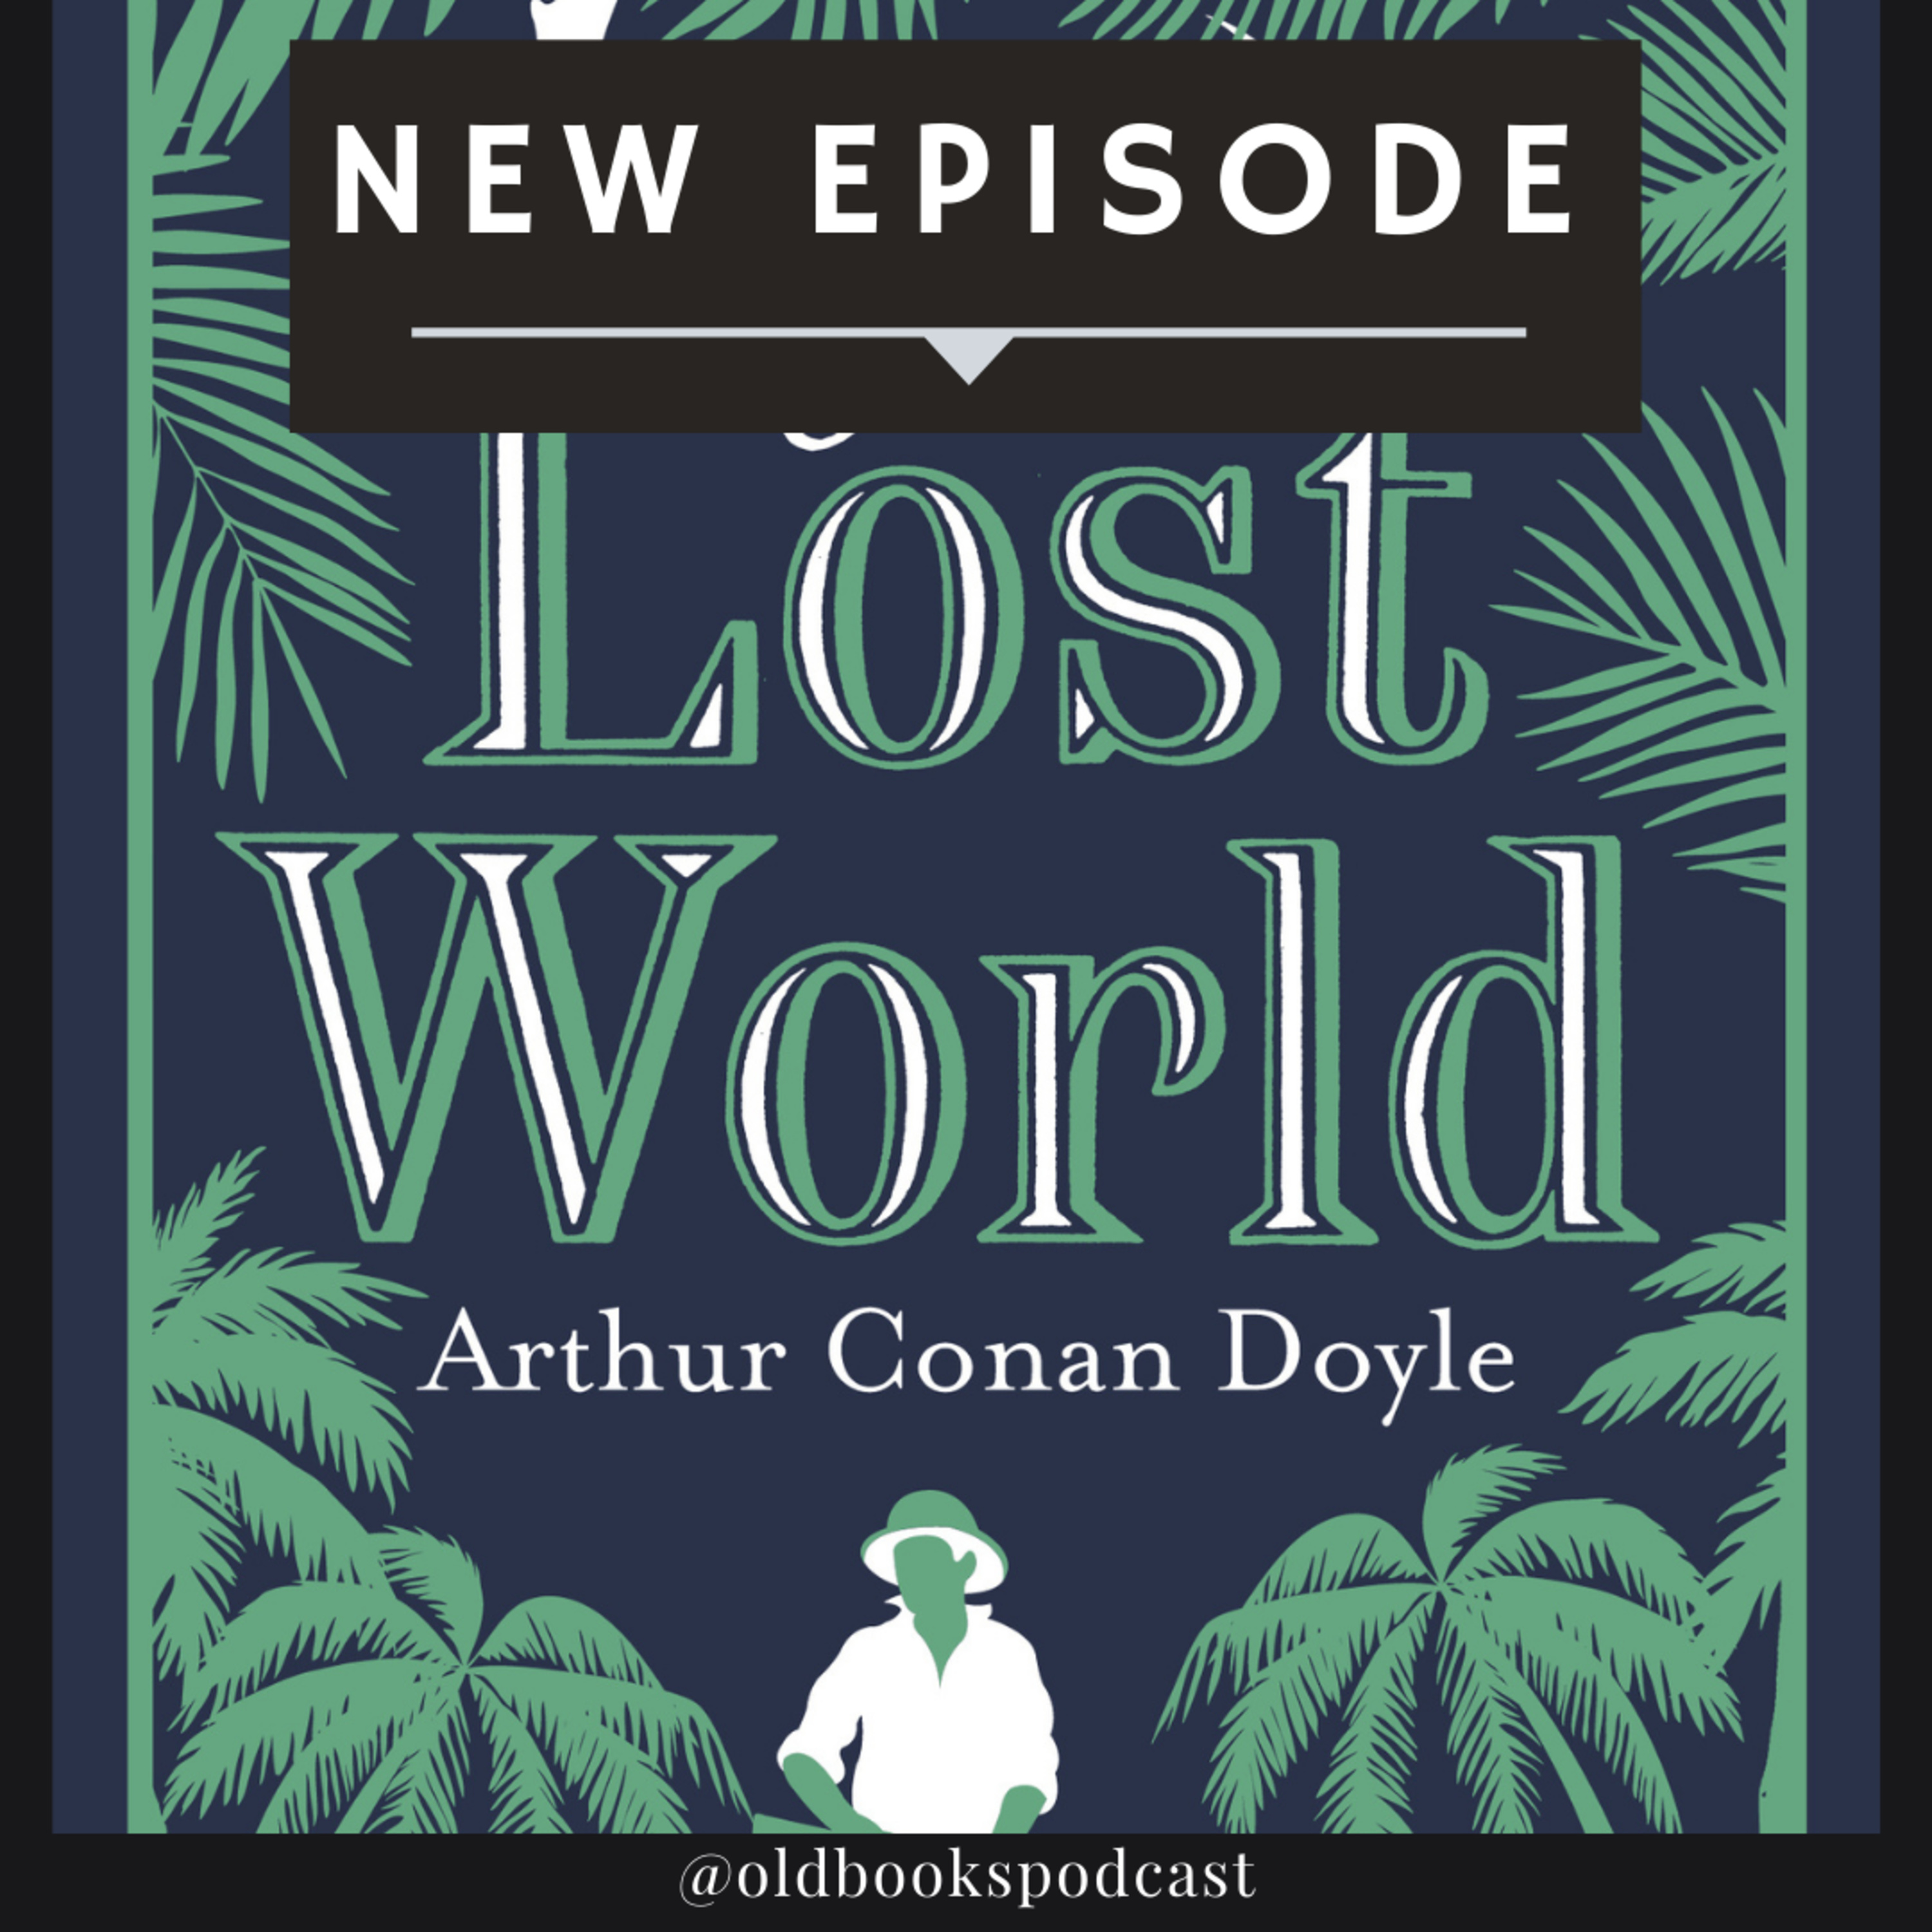 Ep 30 - The Lost World pt 1